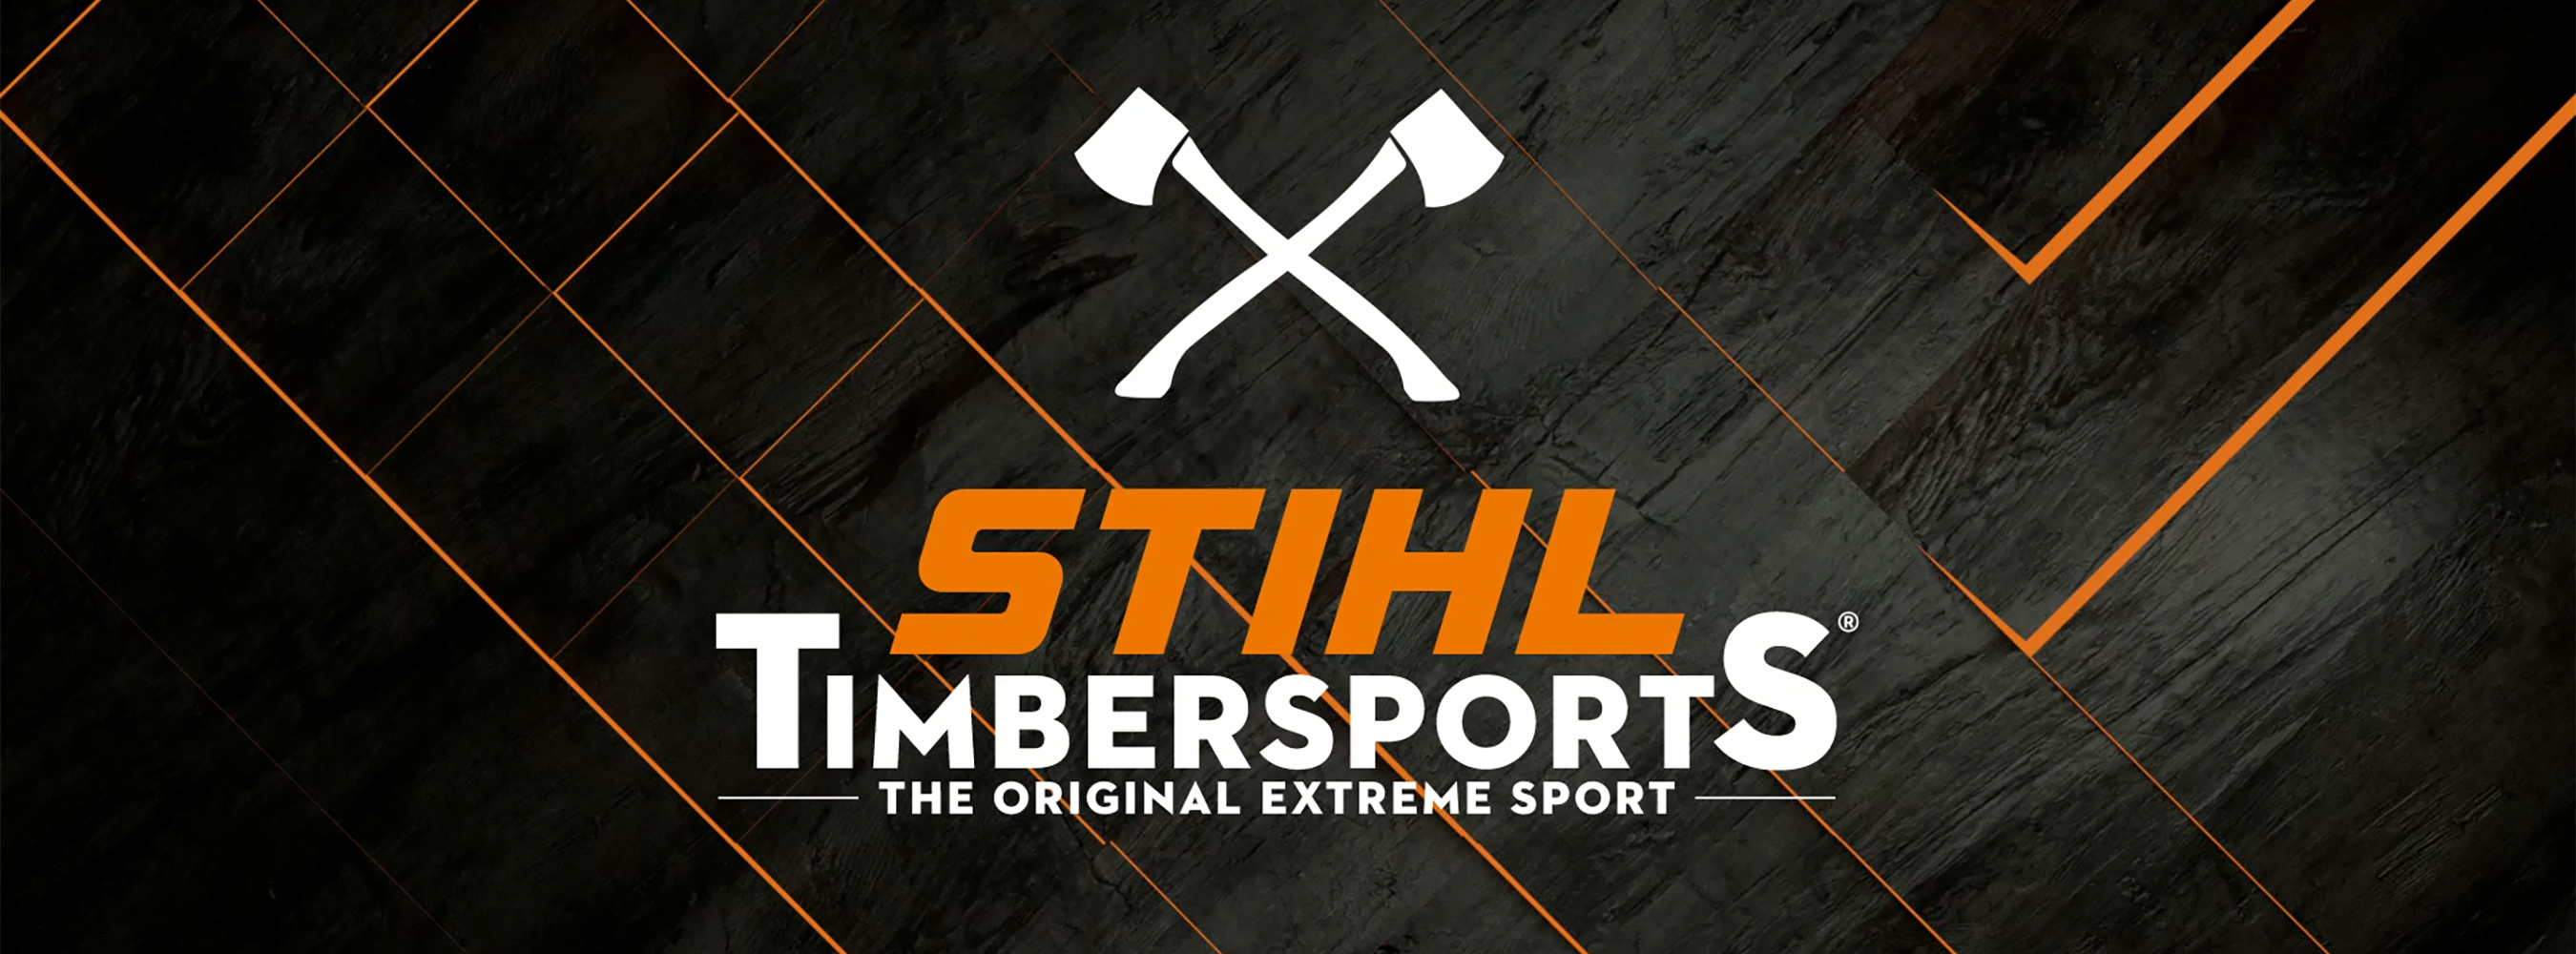 STIHL TIMBERSPORTS® competitions officially return to the United States in 2021.